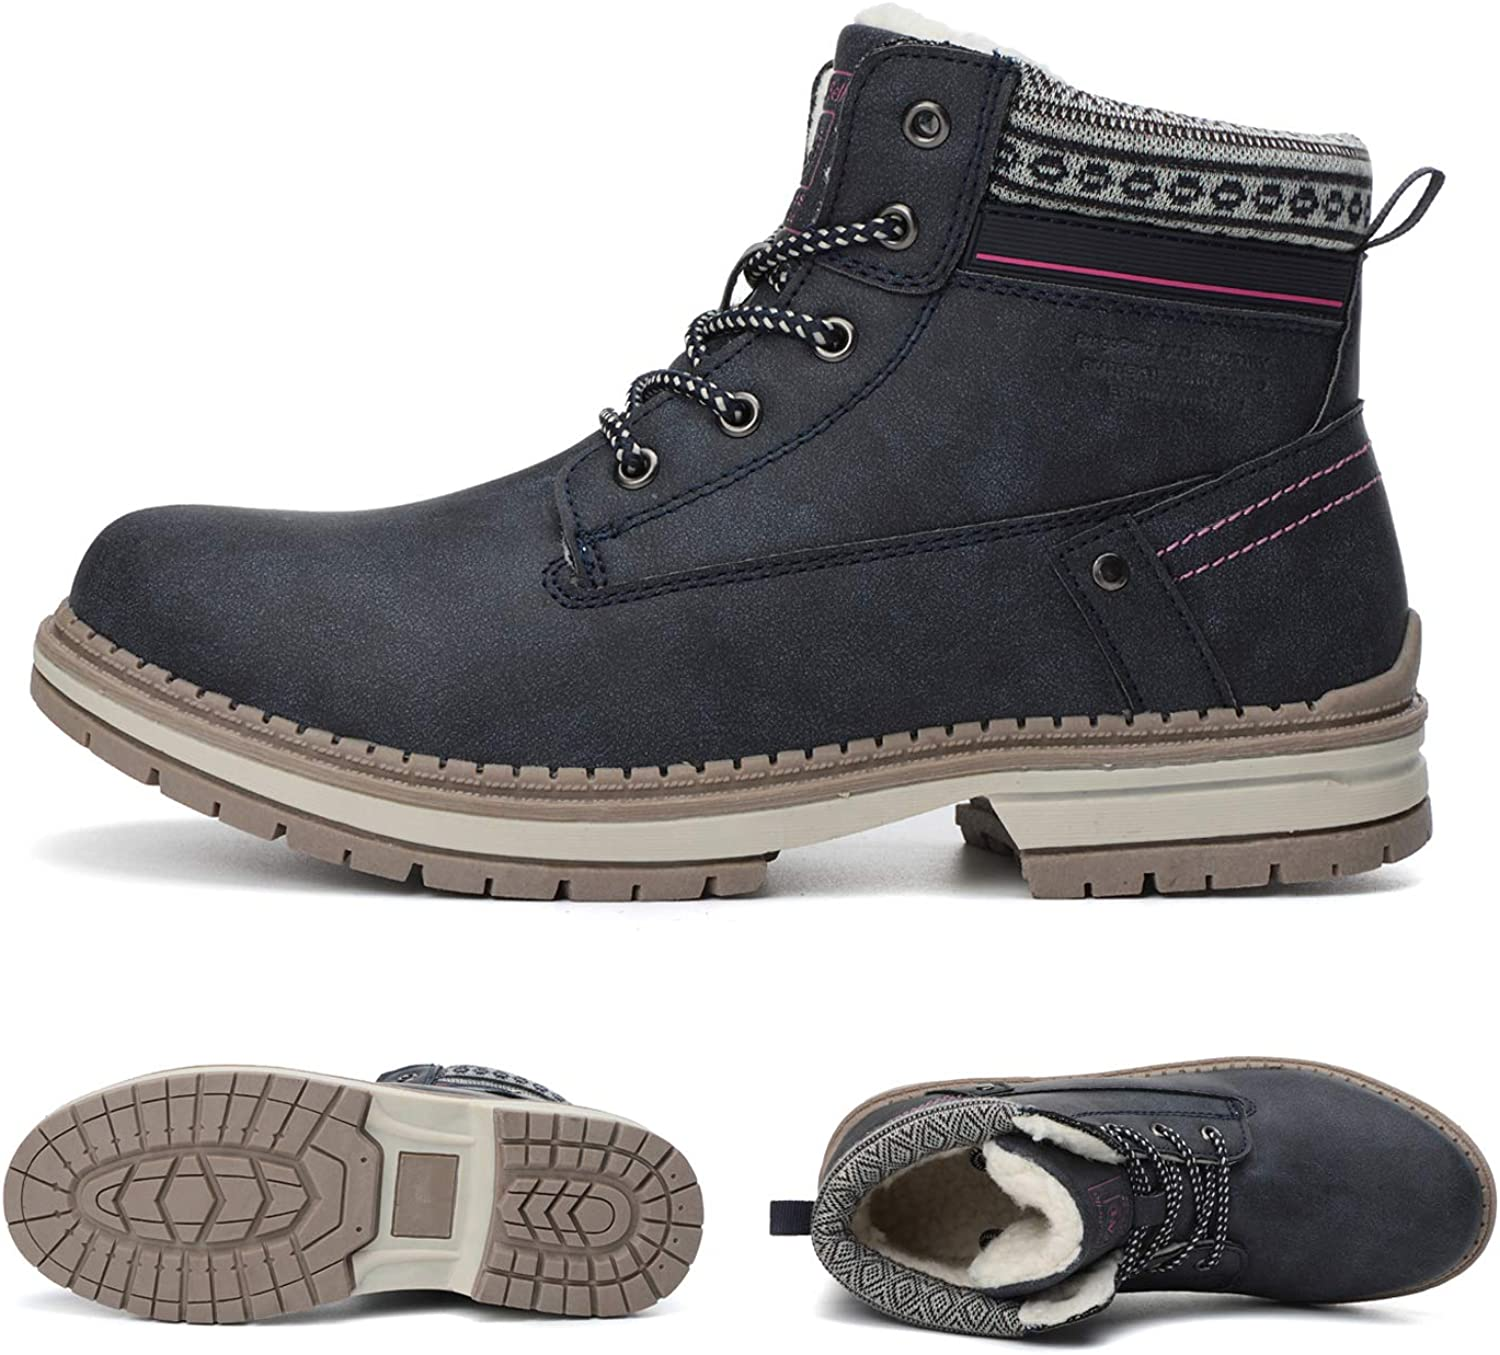 ARRIGO BELLO Snow Boots Womens Winter Boots Warm Ankle Fully Fur Lined Anti-Slip Leather Boots Work Walking Hiking Outdoor Urban 4UK-7UK